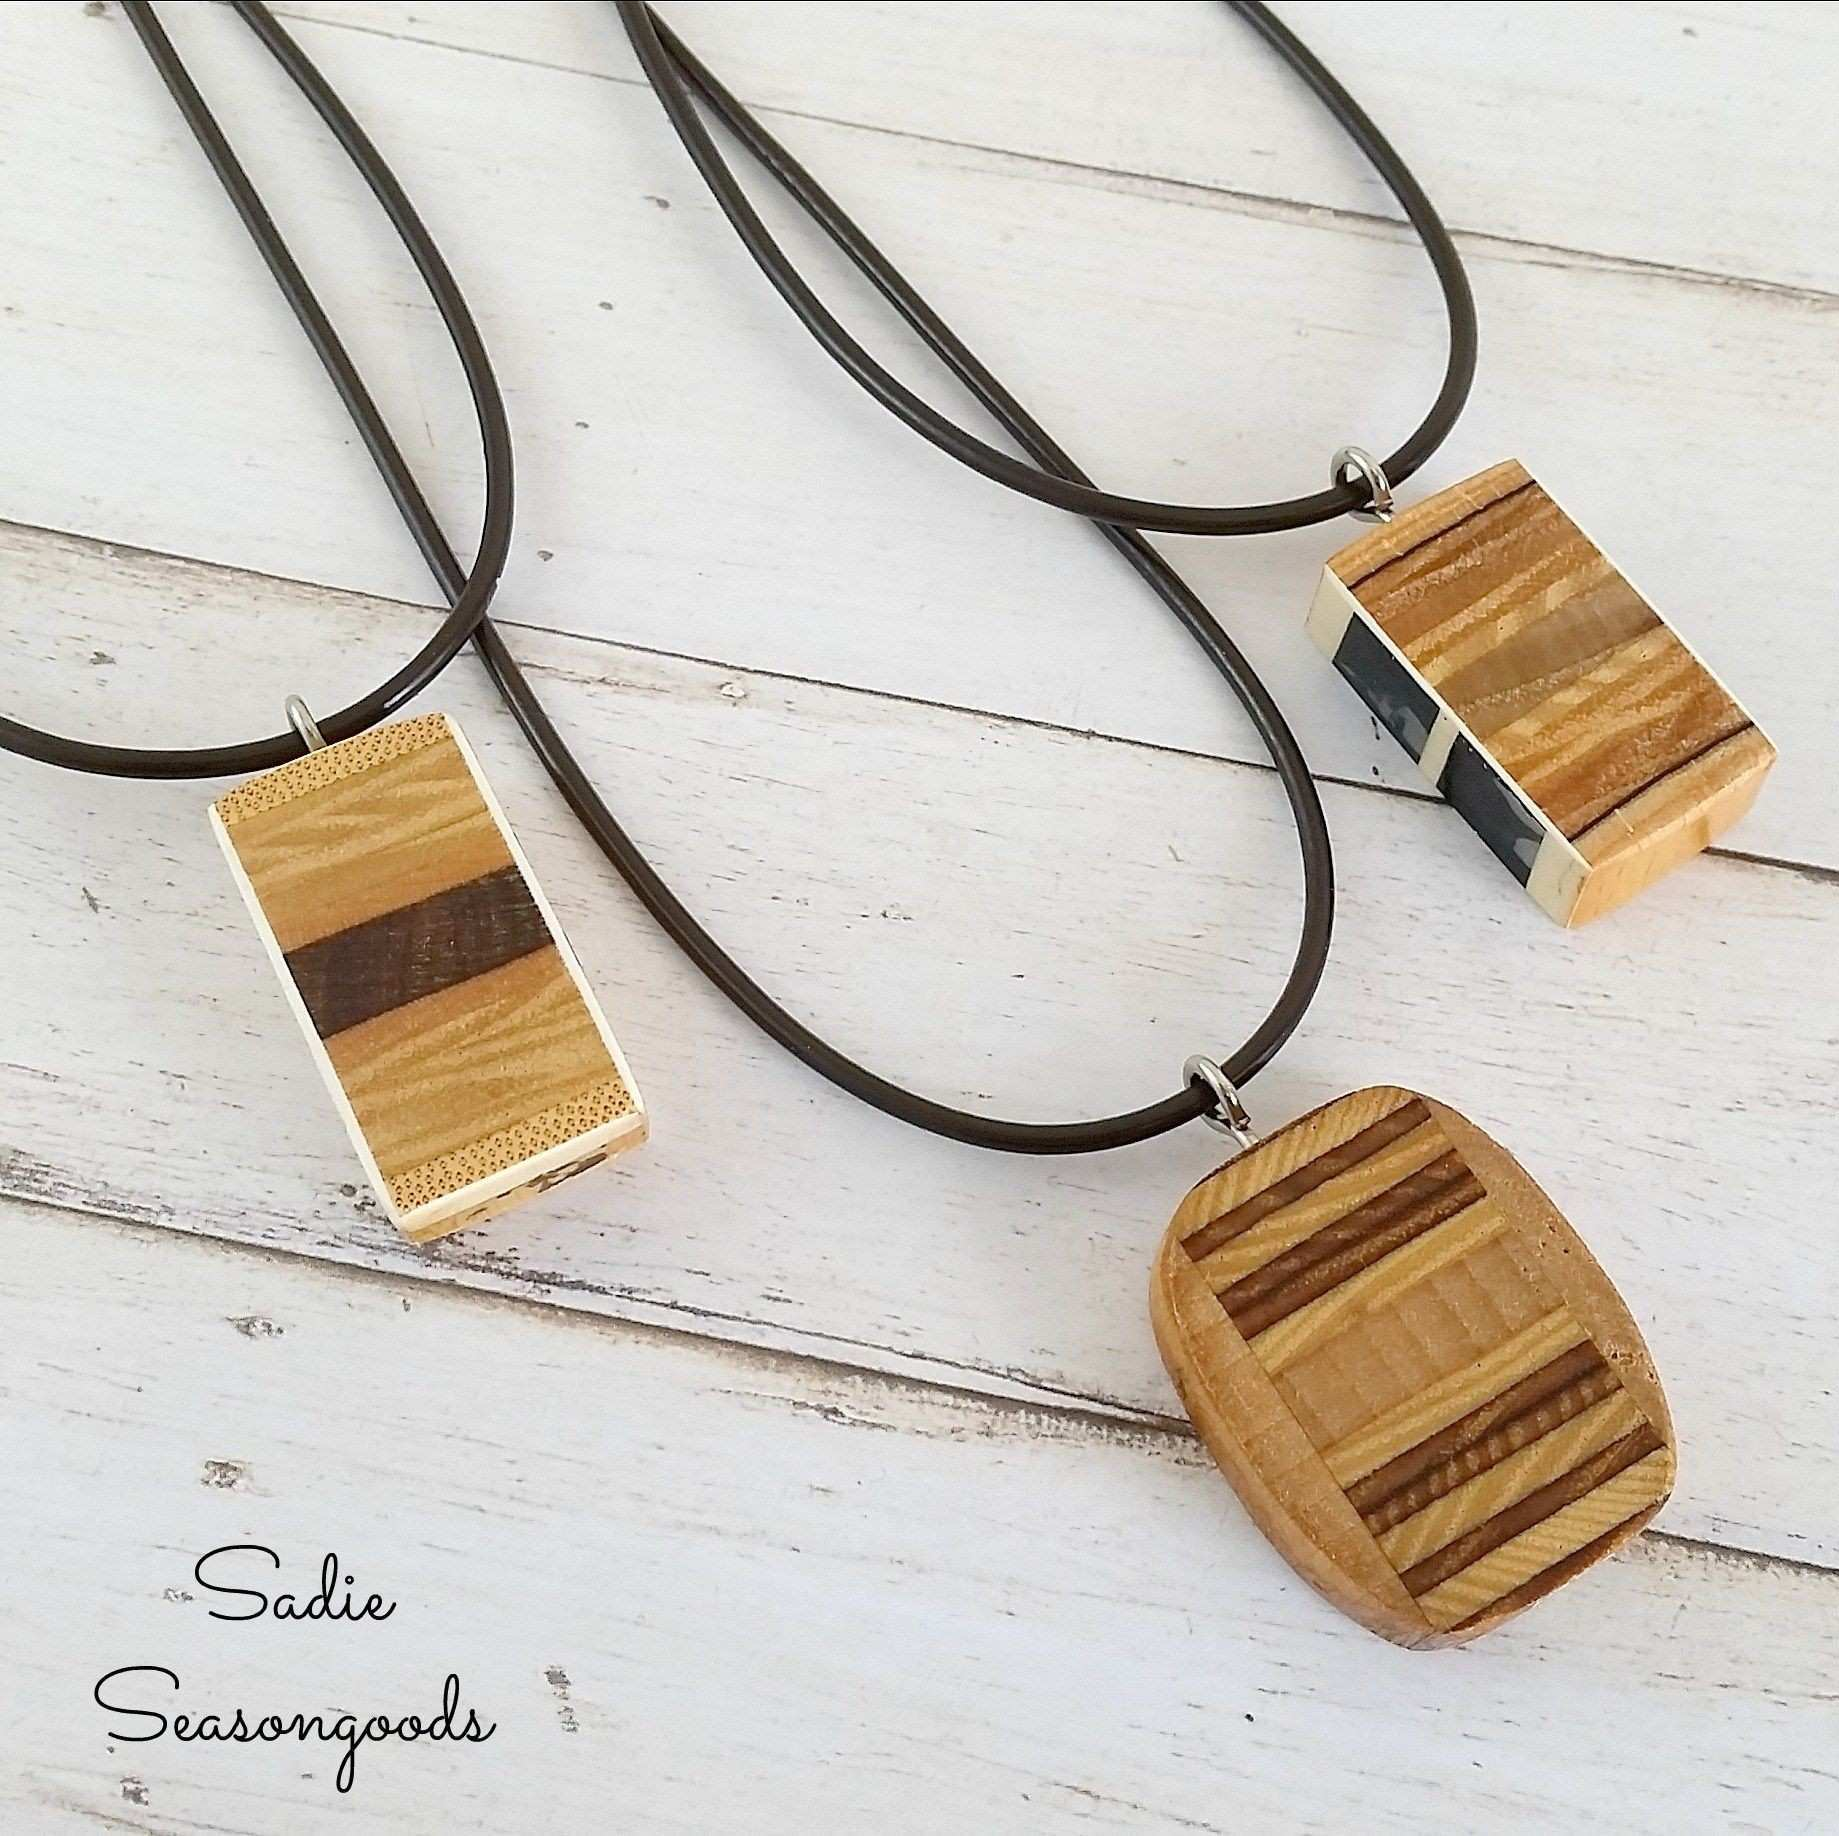 Wooden pendant necklaces from vintage wooden tennis racket handles